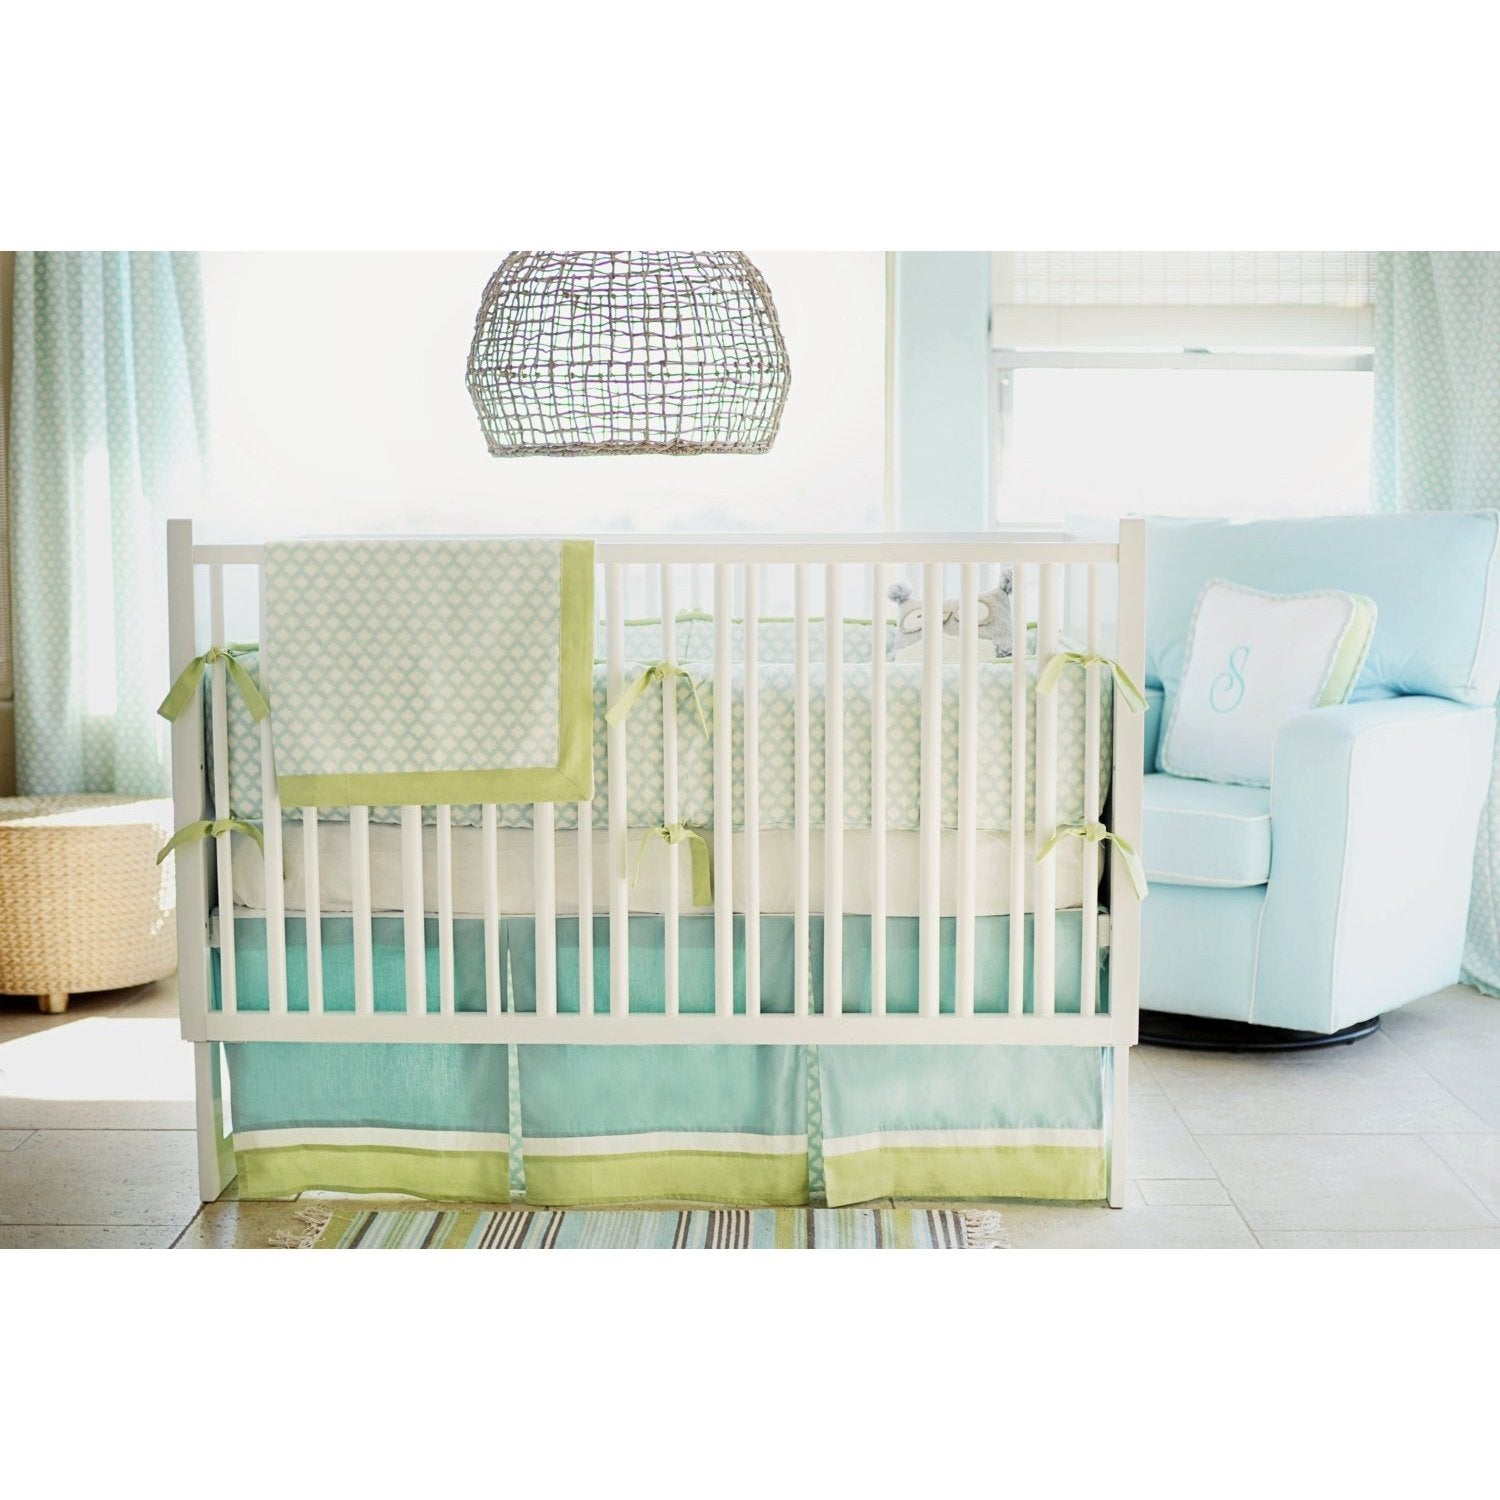 Aqua & Green Sprout Baby Bedding Set-Crib Bedding Set-New Arrivals-Jack and Jill Boutique